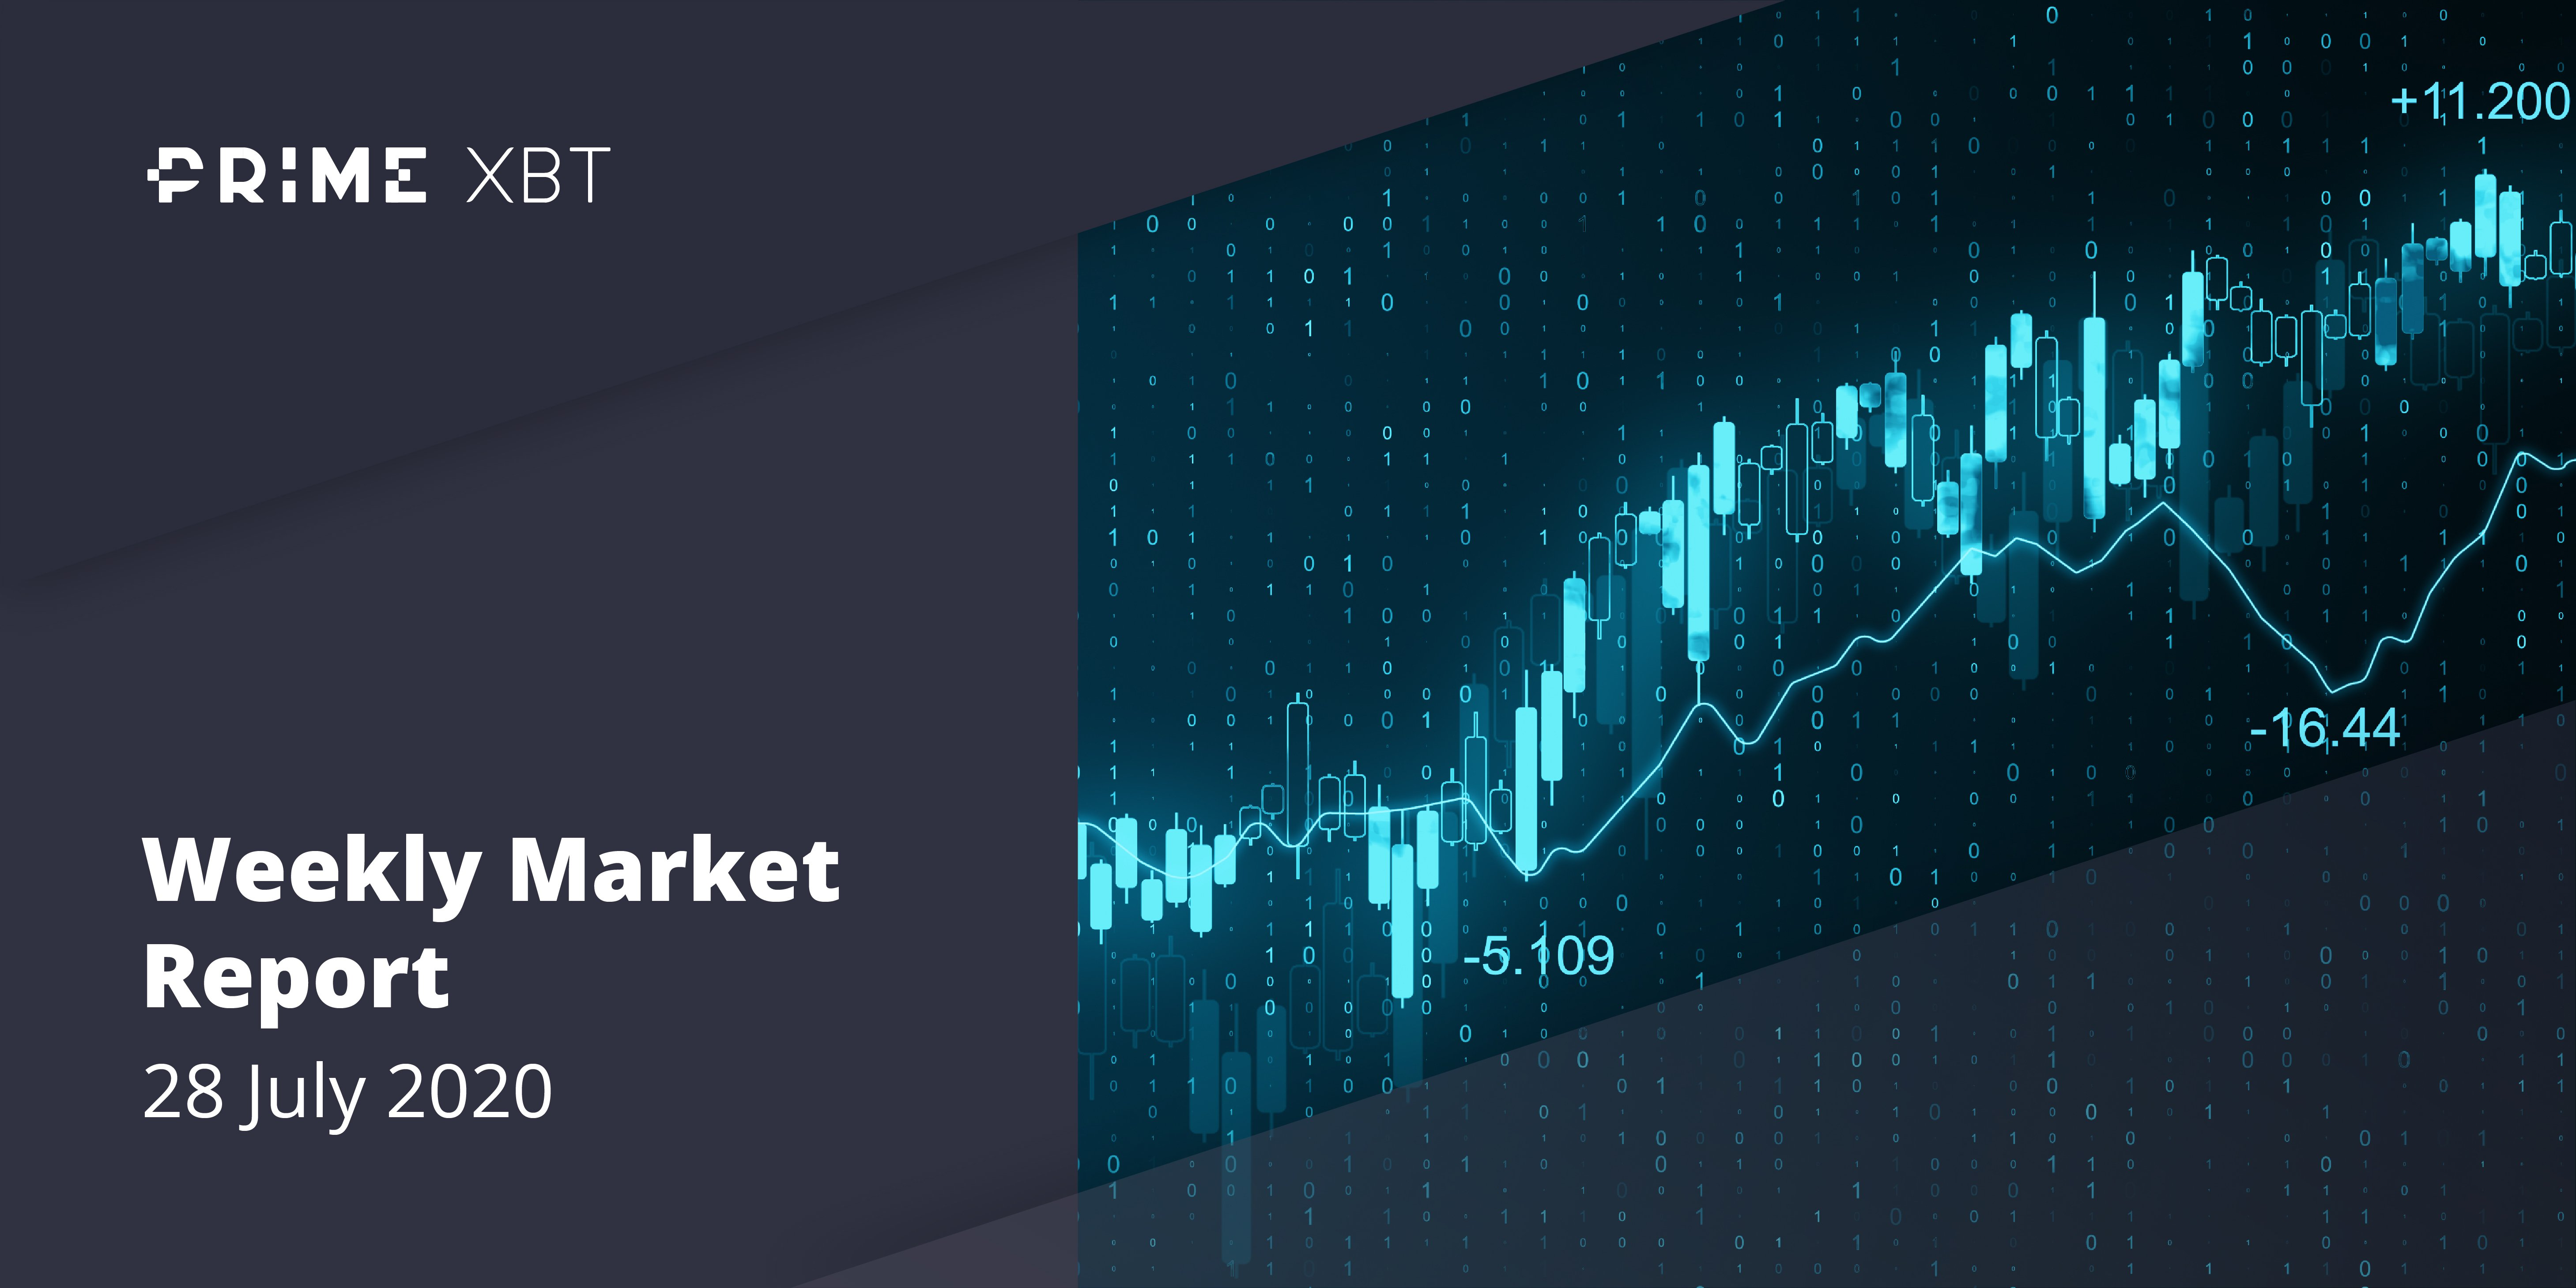 Crypto Market Report: Bulls are Back as Bitcoin Takes off, Ethereum Follows Close Behind in Altcoin Rally - 28.07.20